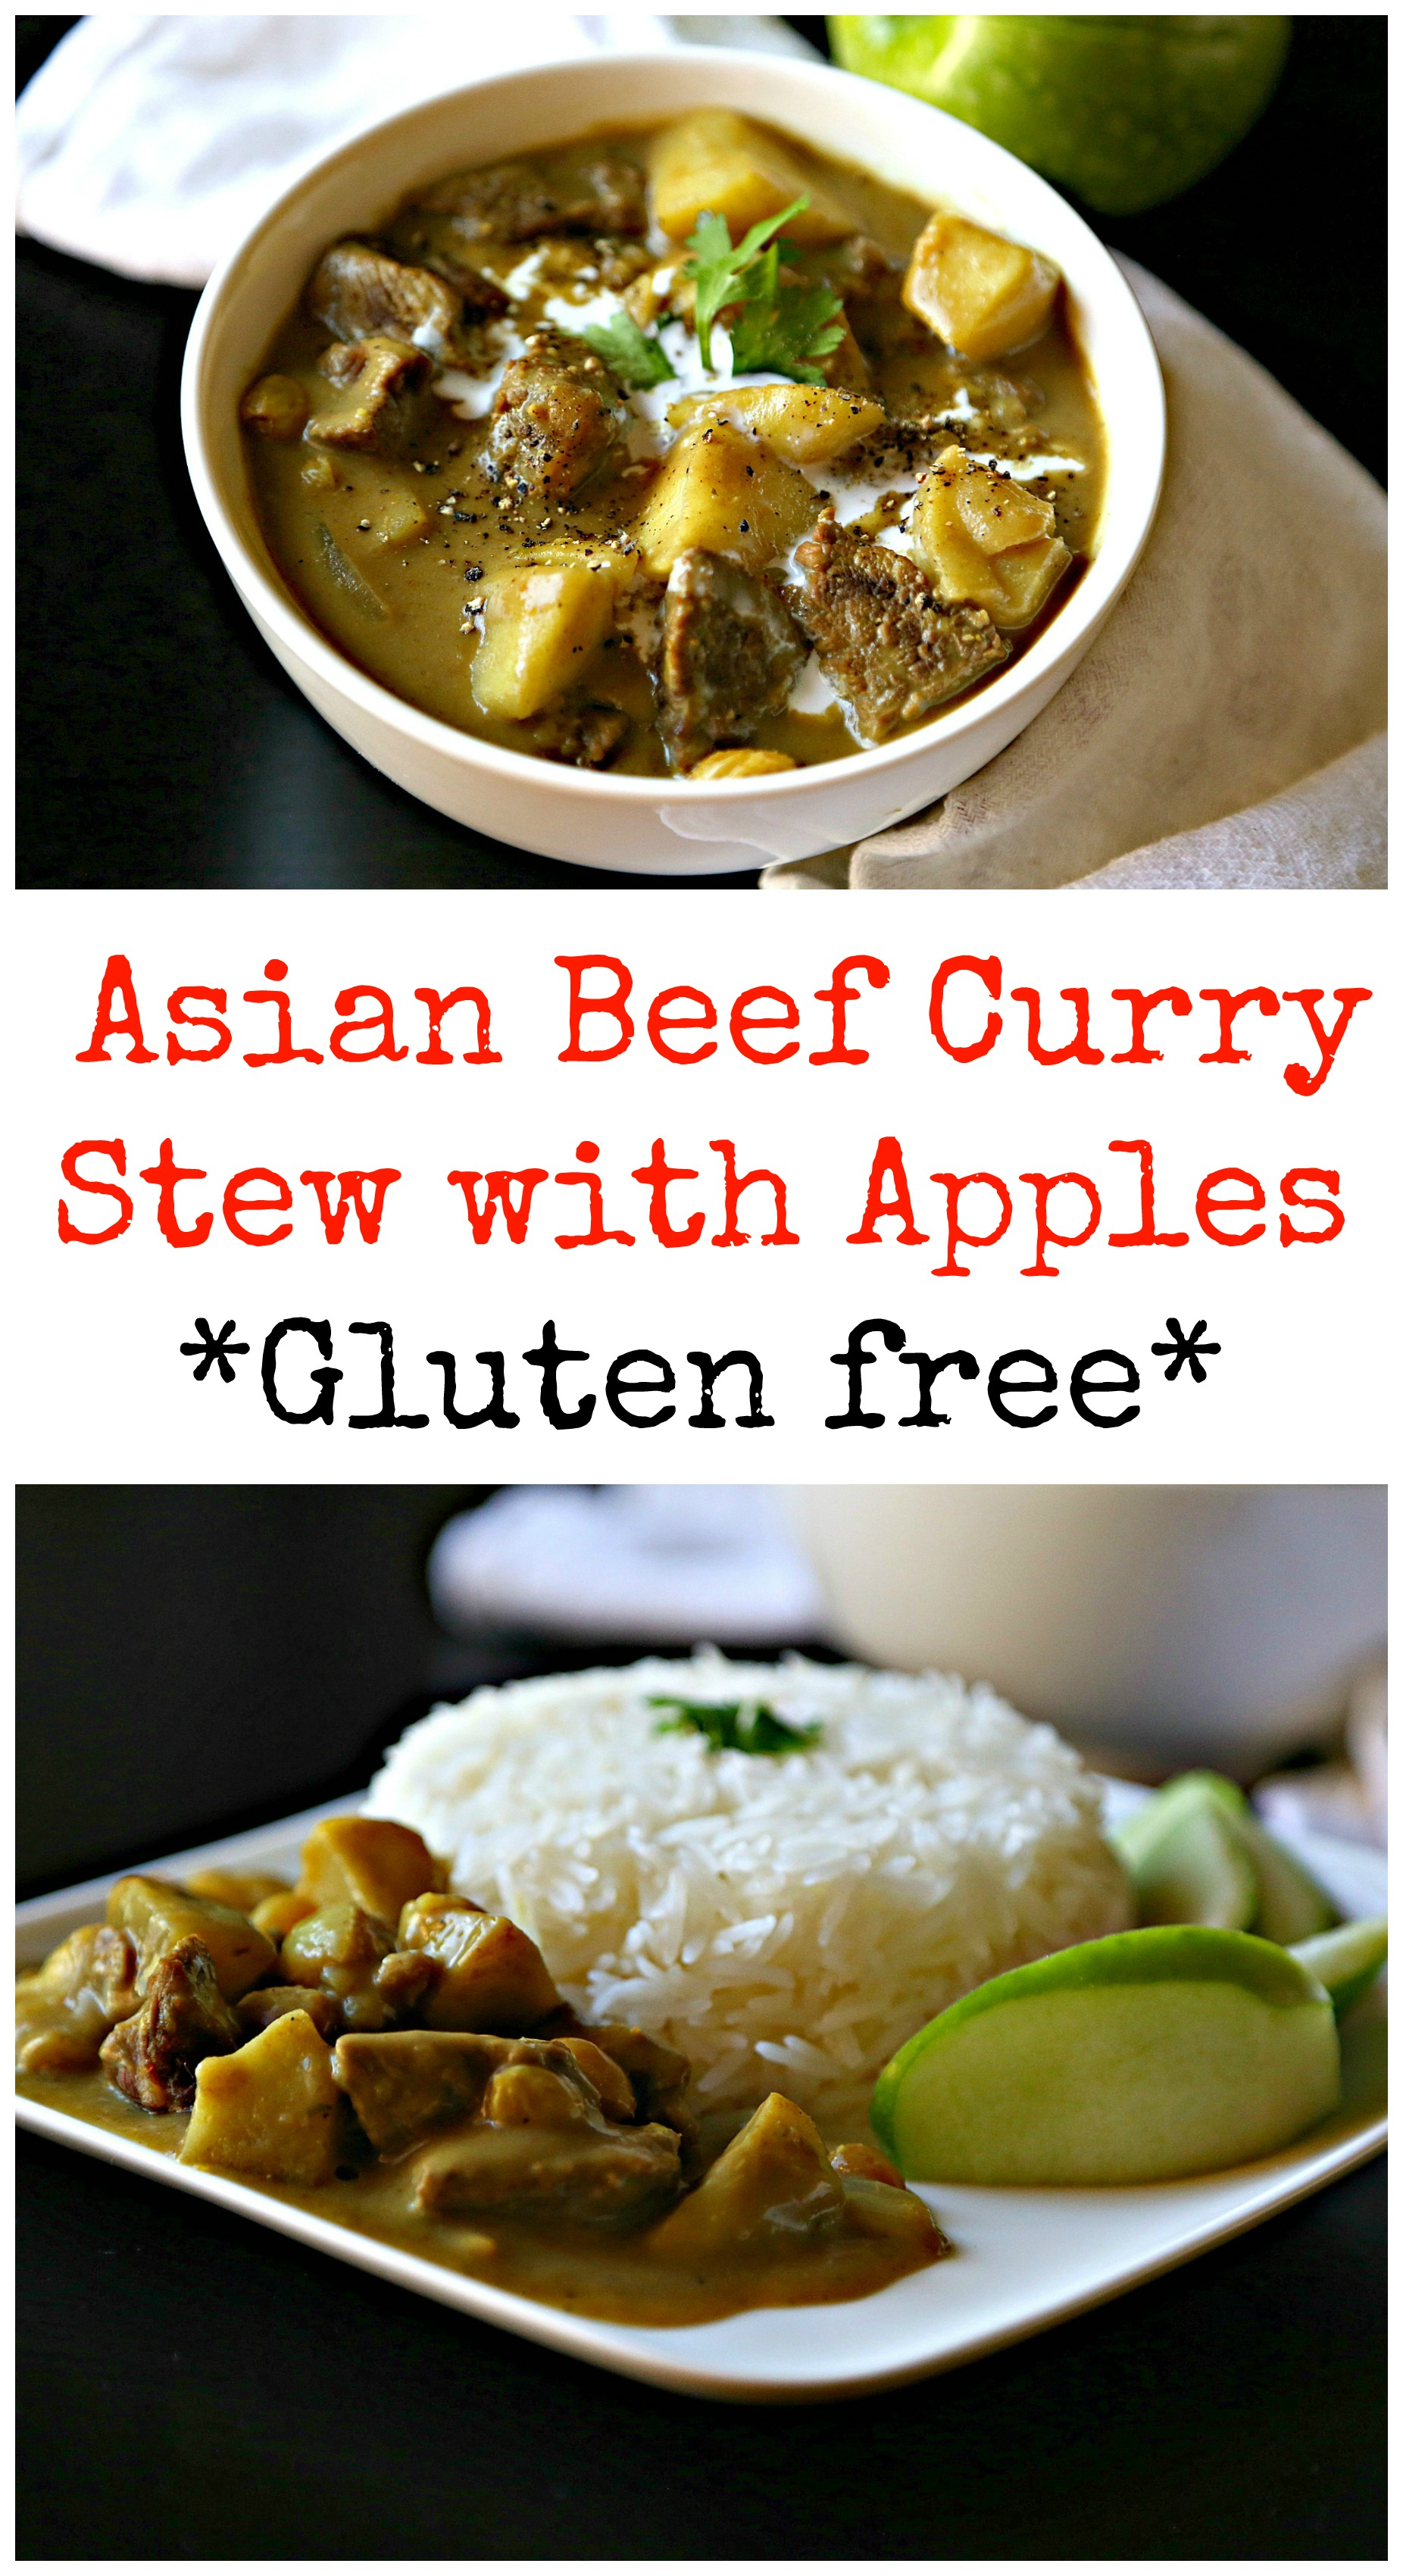 picmonkey-collage-apple-beef-curry-edited